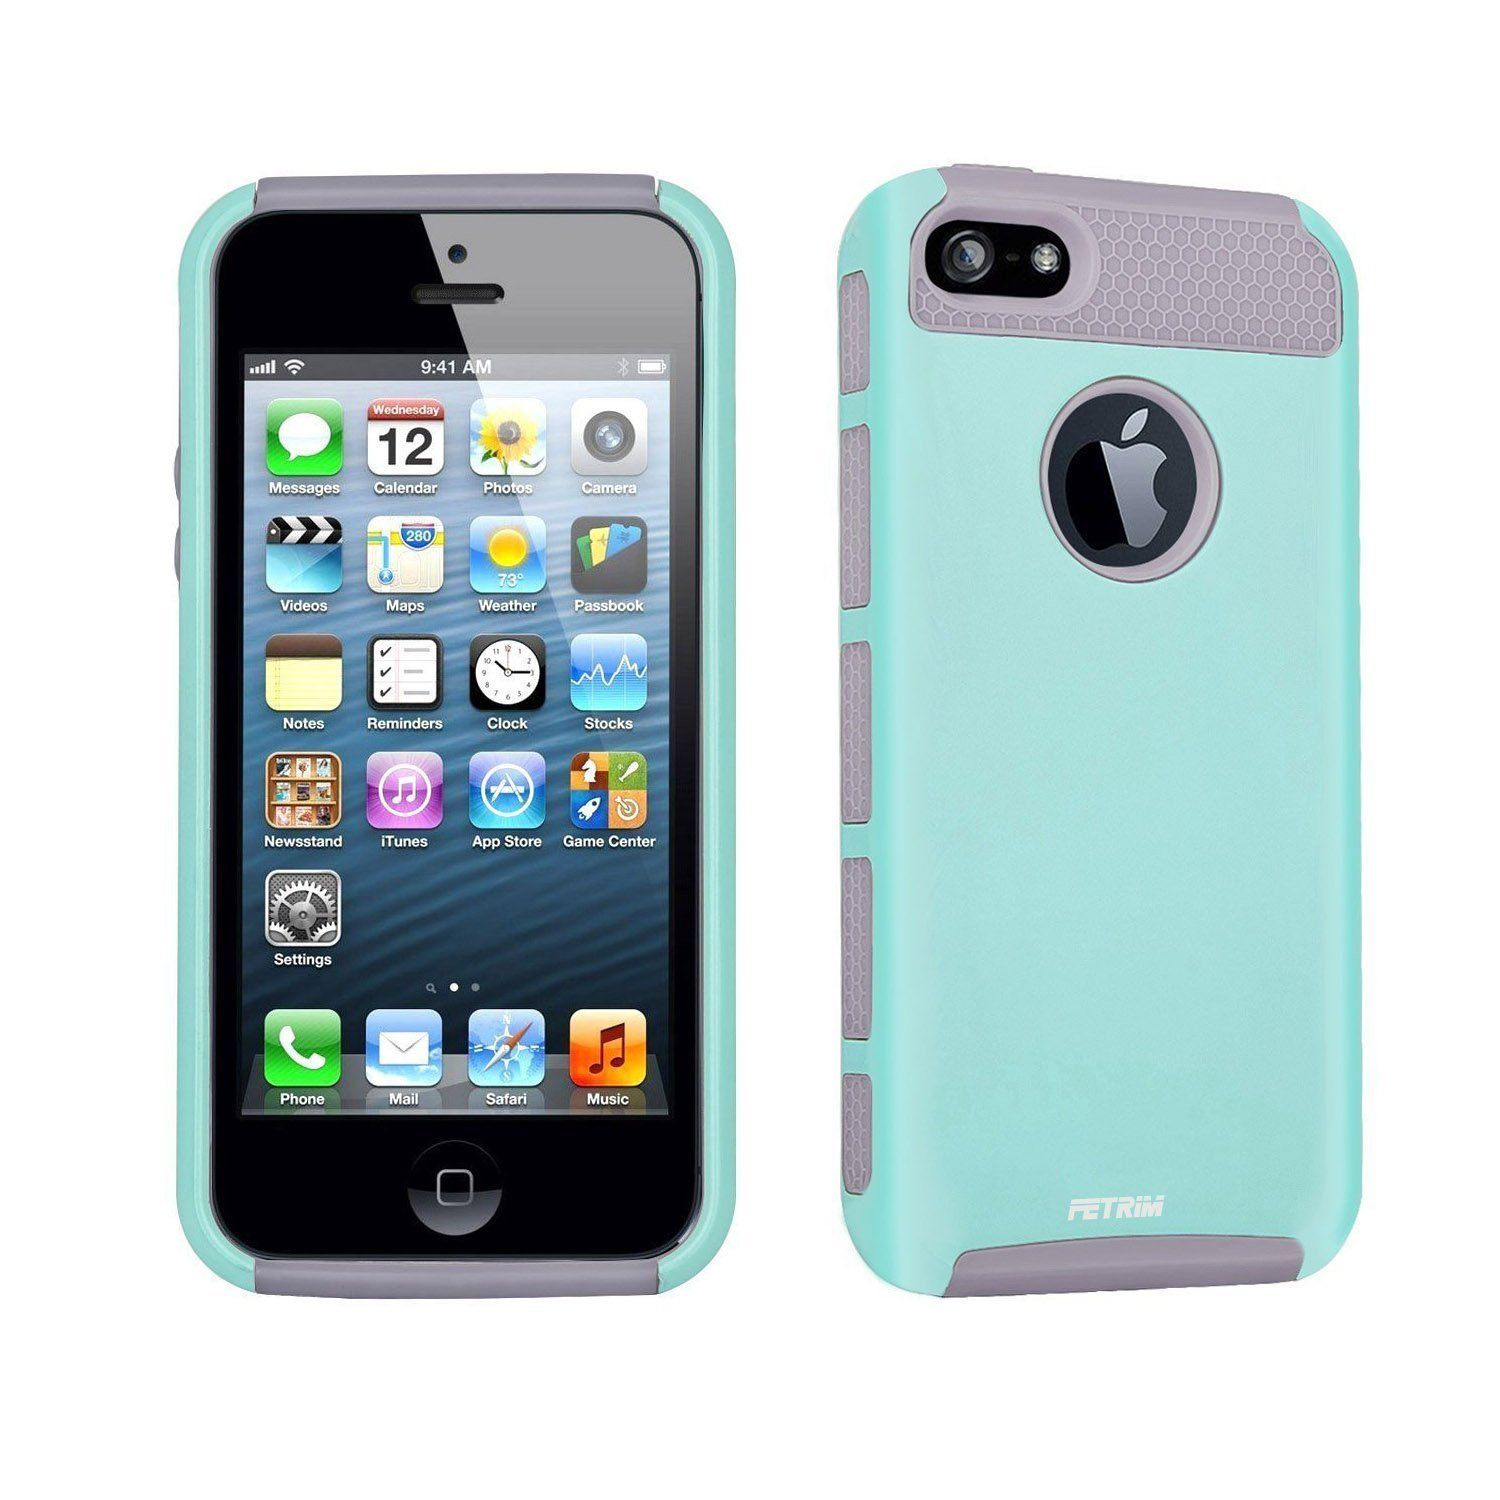 Amazon.com: iPhone 5C Case,Fetrim Slim Fit Heavy Duty Protection Case Dual Layer Hybrid Bumper Impact Protection Shockproof Hard Ultra Protective Rubber Cover for Apple iPhone 5C (Blue Gray): Cell Phones & Accessories